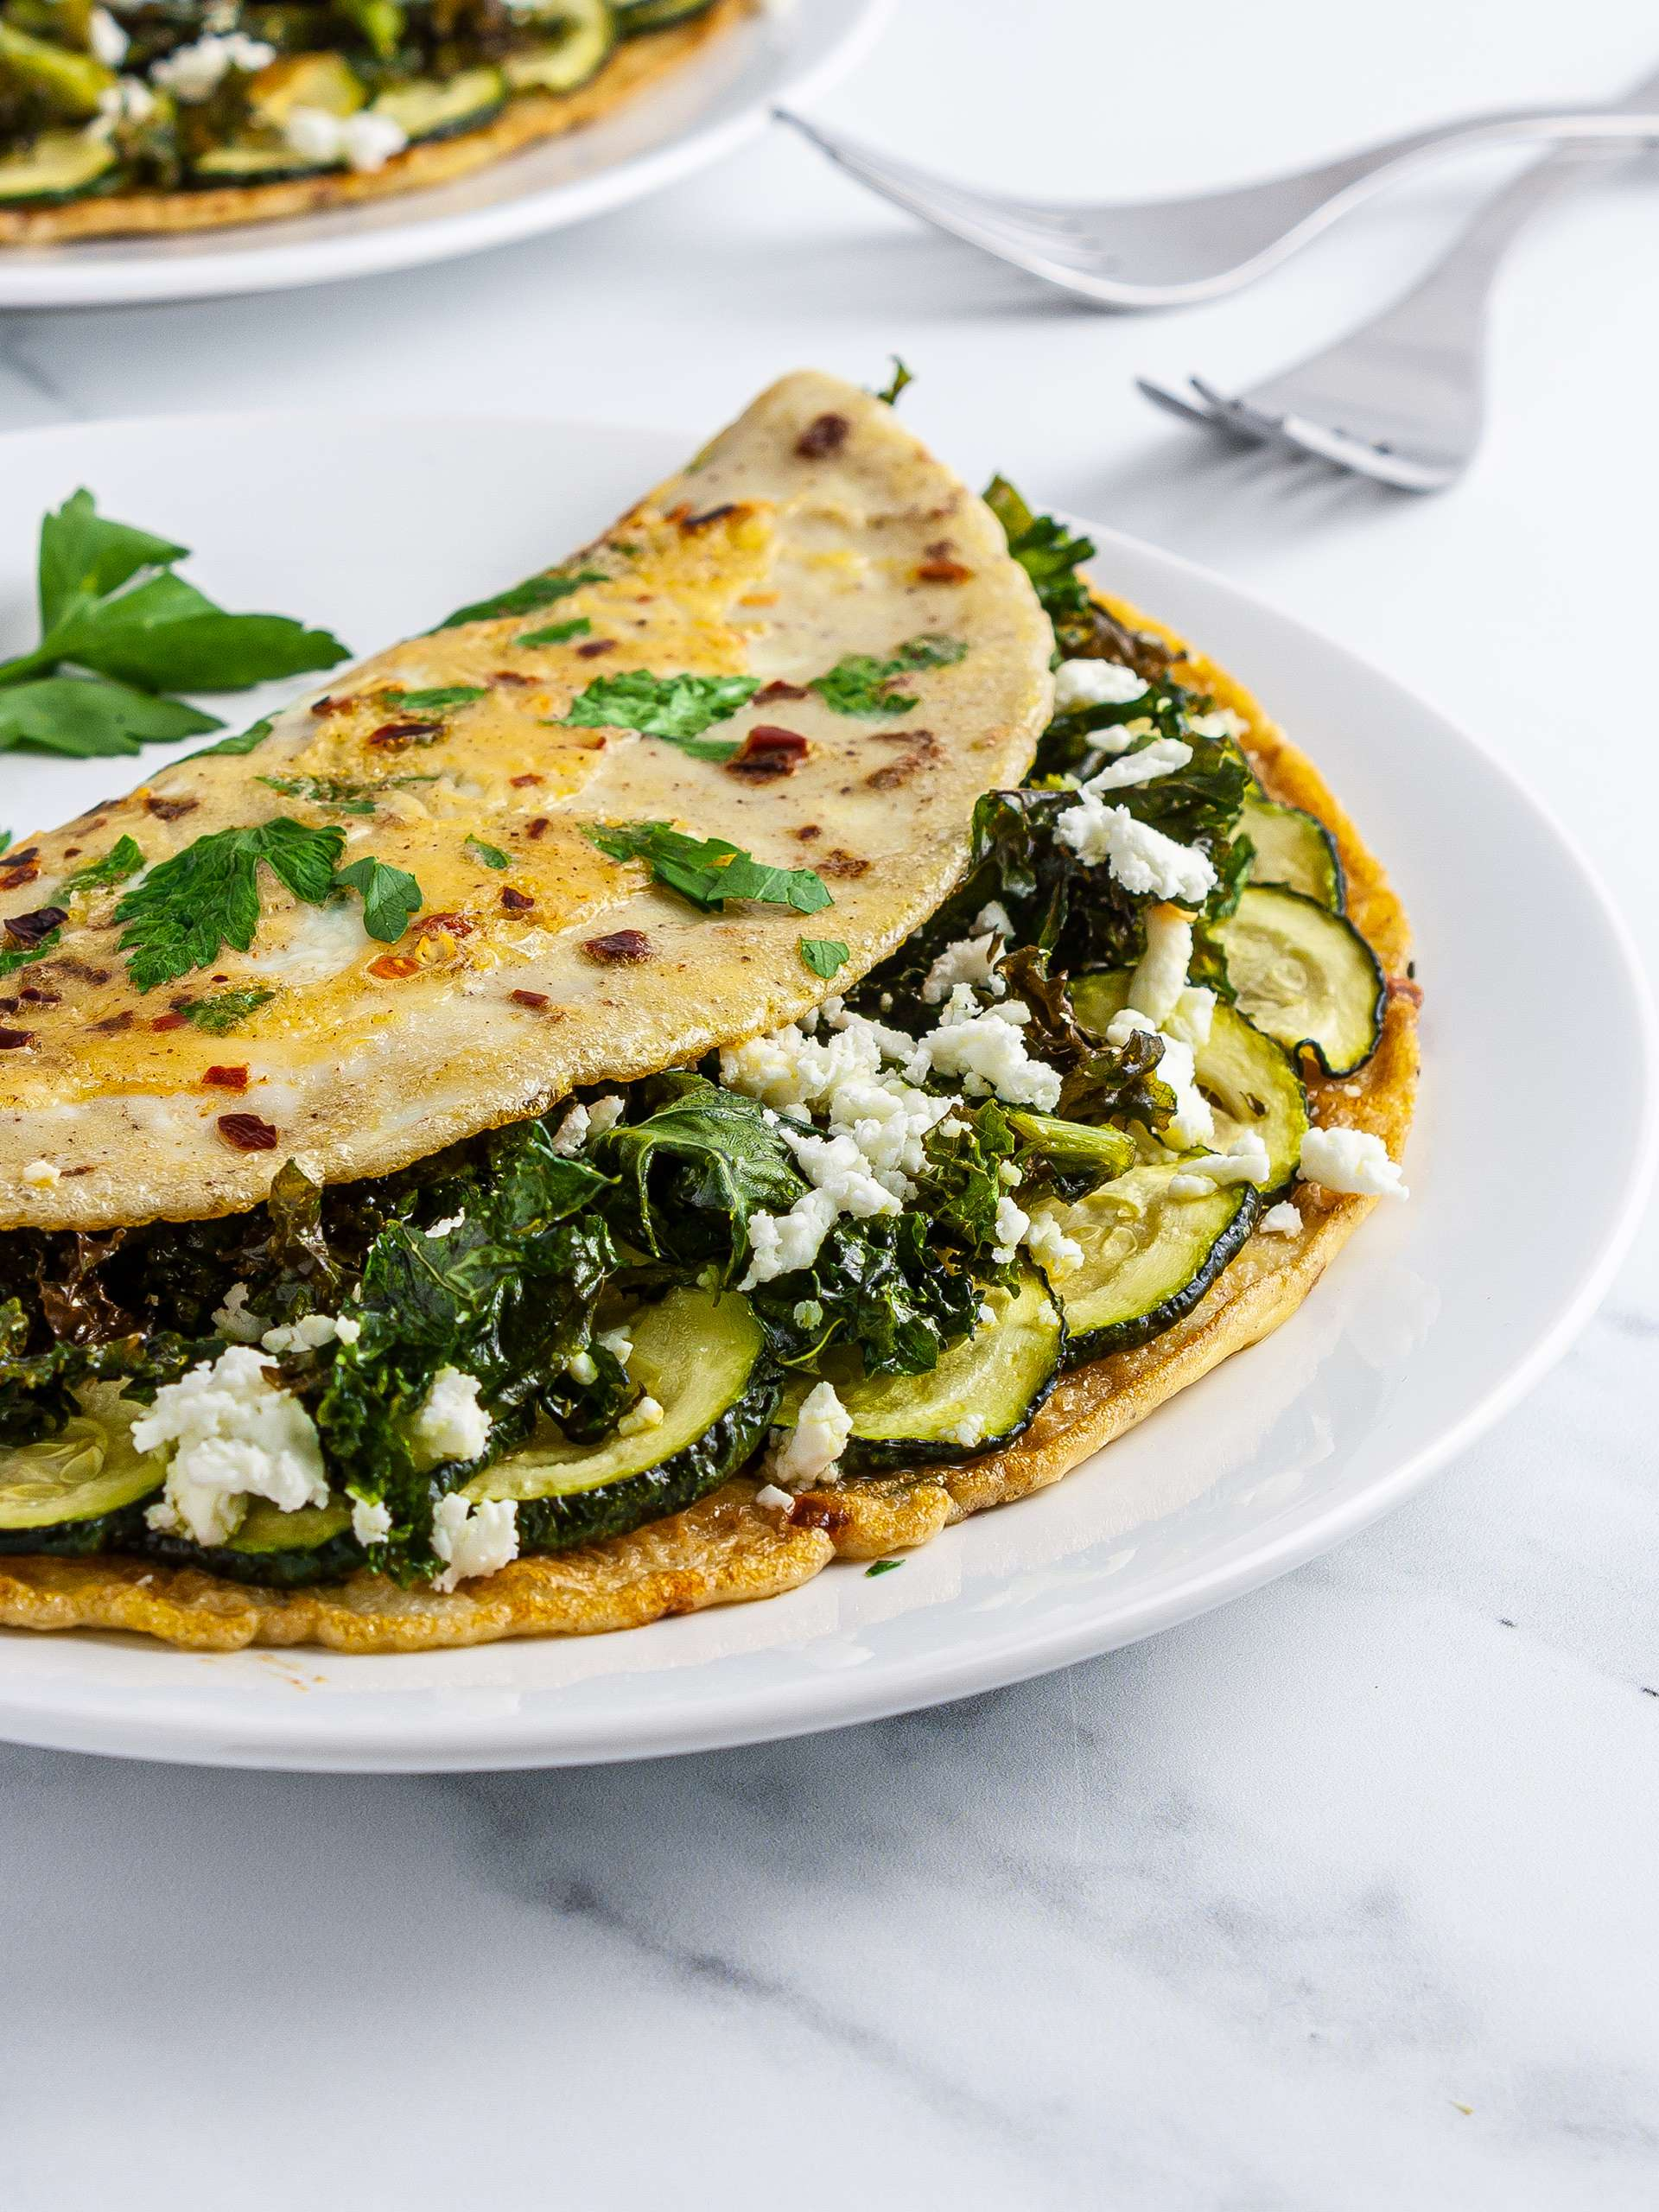 Kale Courgette and Feta Omelette Recipe Thumbnail